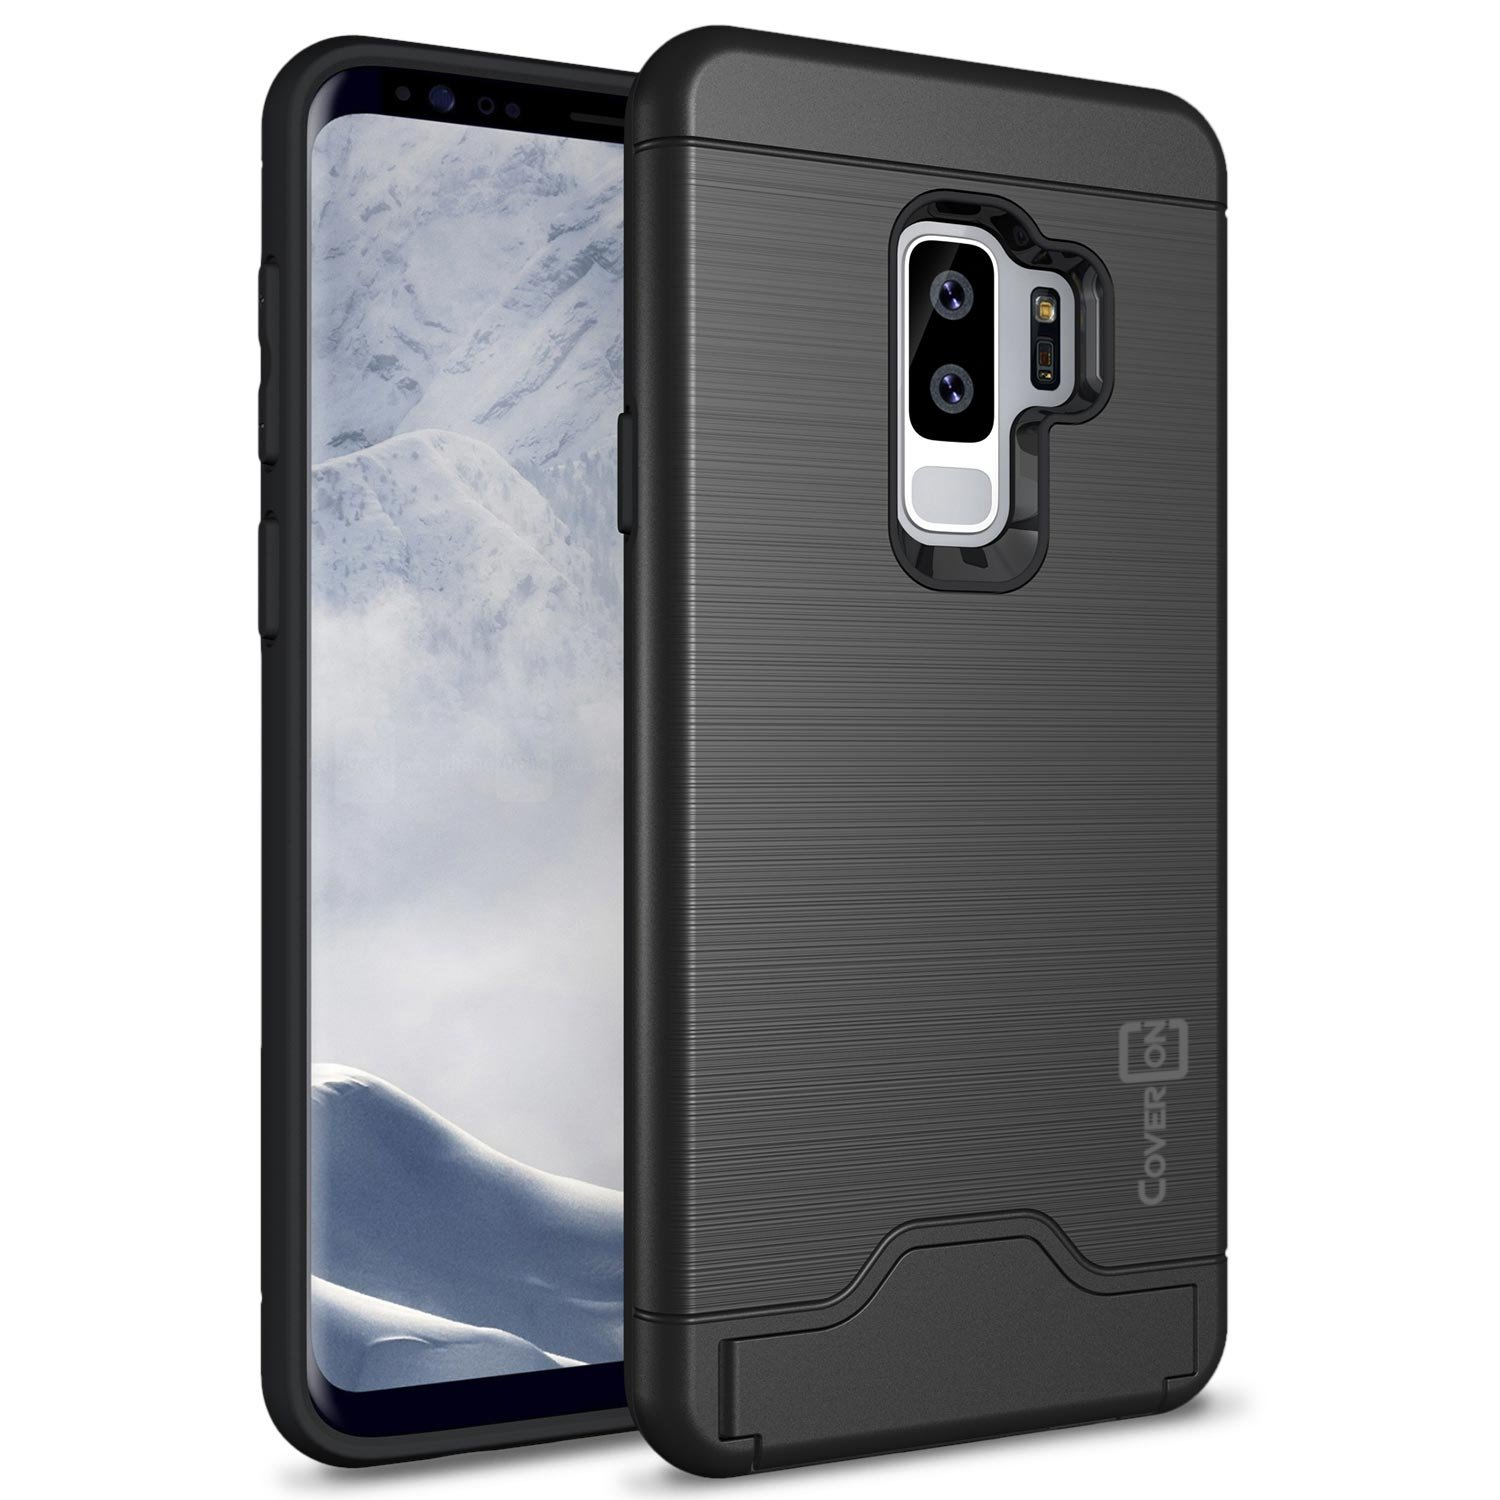 Coveron Galaxy S9 Plus Case With Card Holder Iphone Xr Spigen Anti Shock Slot Slim Armor Cs Casing Black Securecard Series Protective Hard Hybrid Phone Cover Credit For Samsung